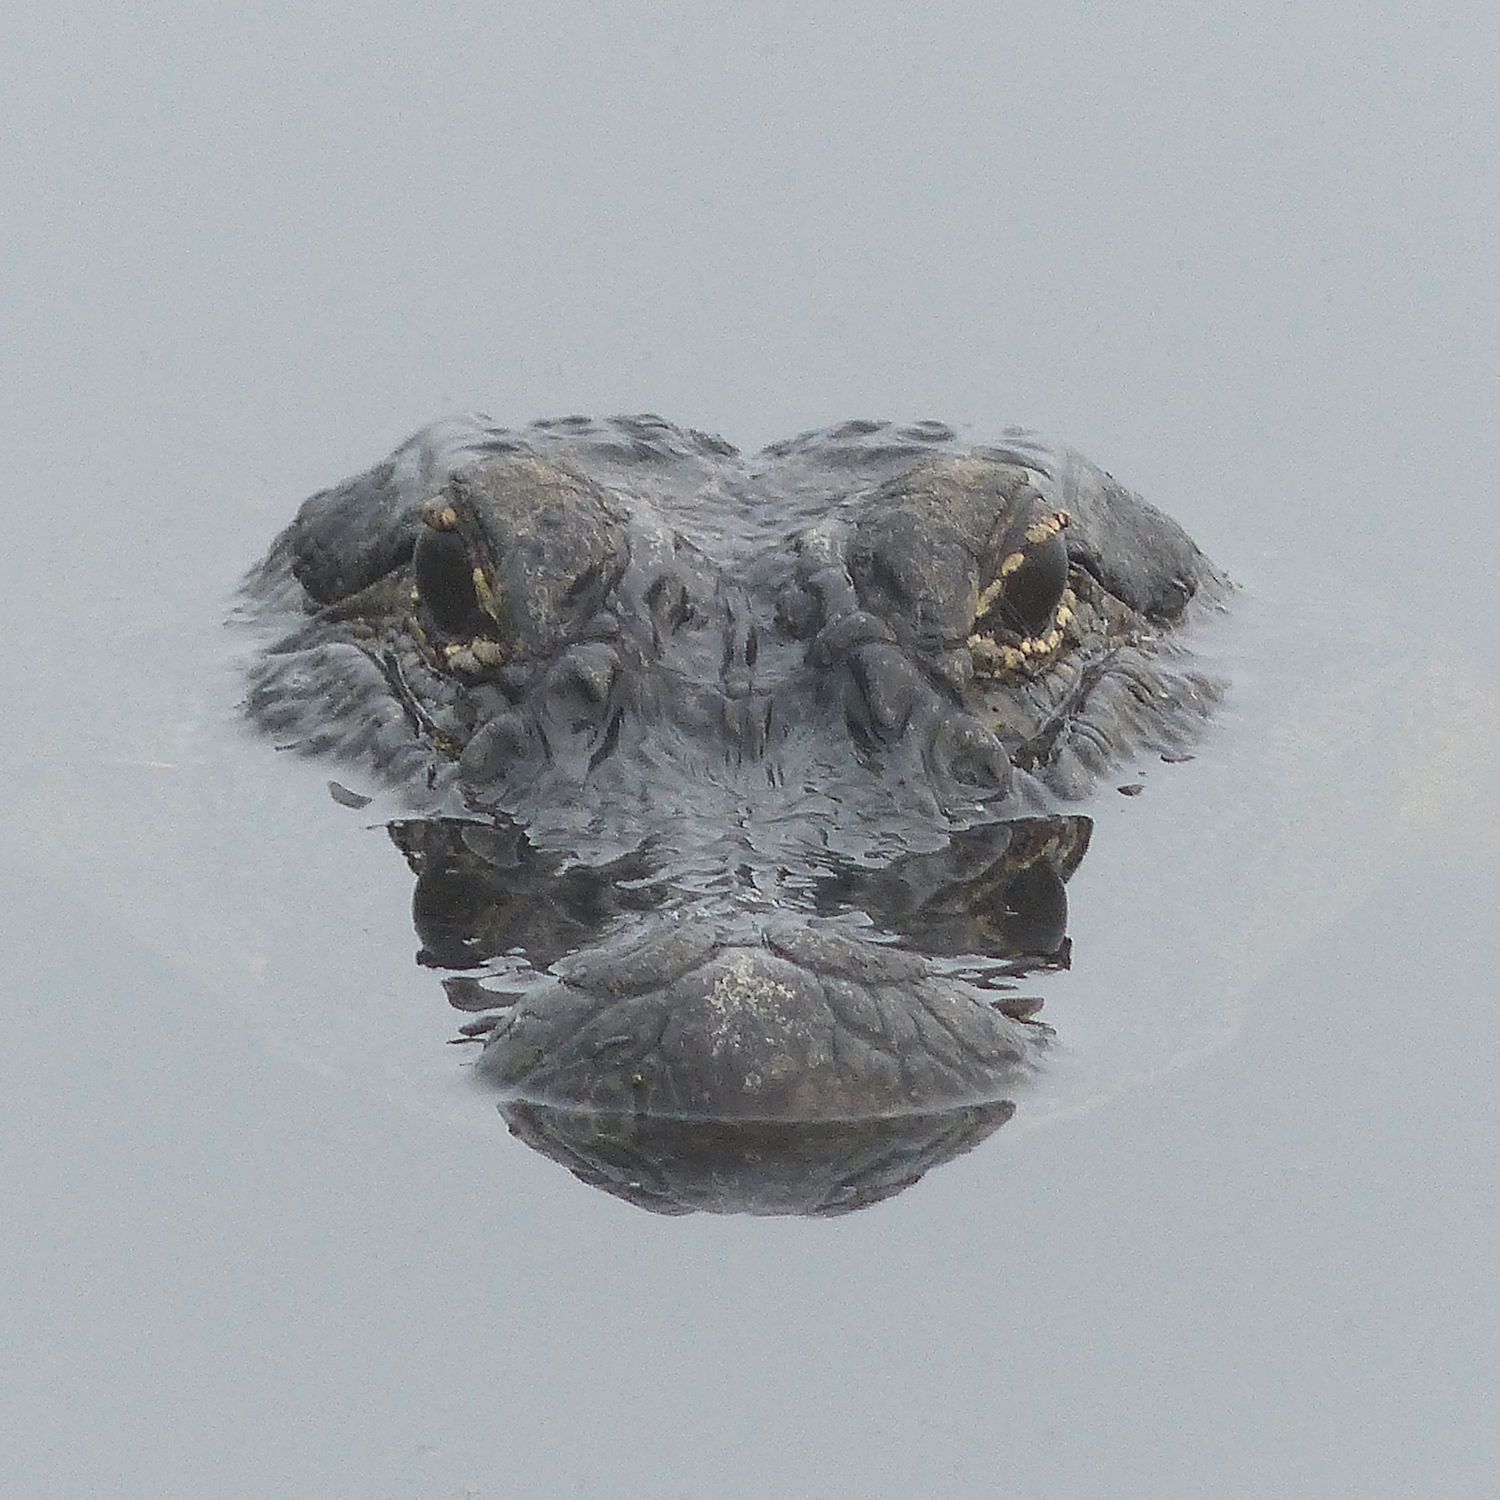 Awesome Alligator's younger brother